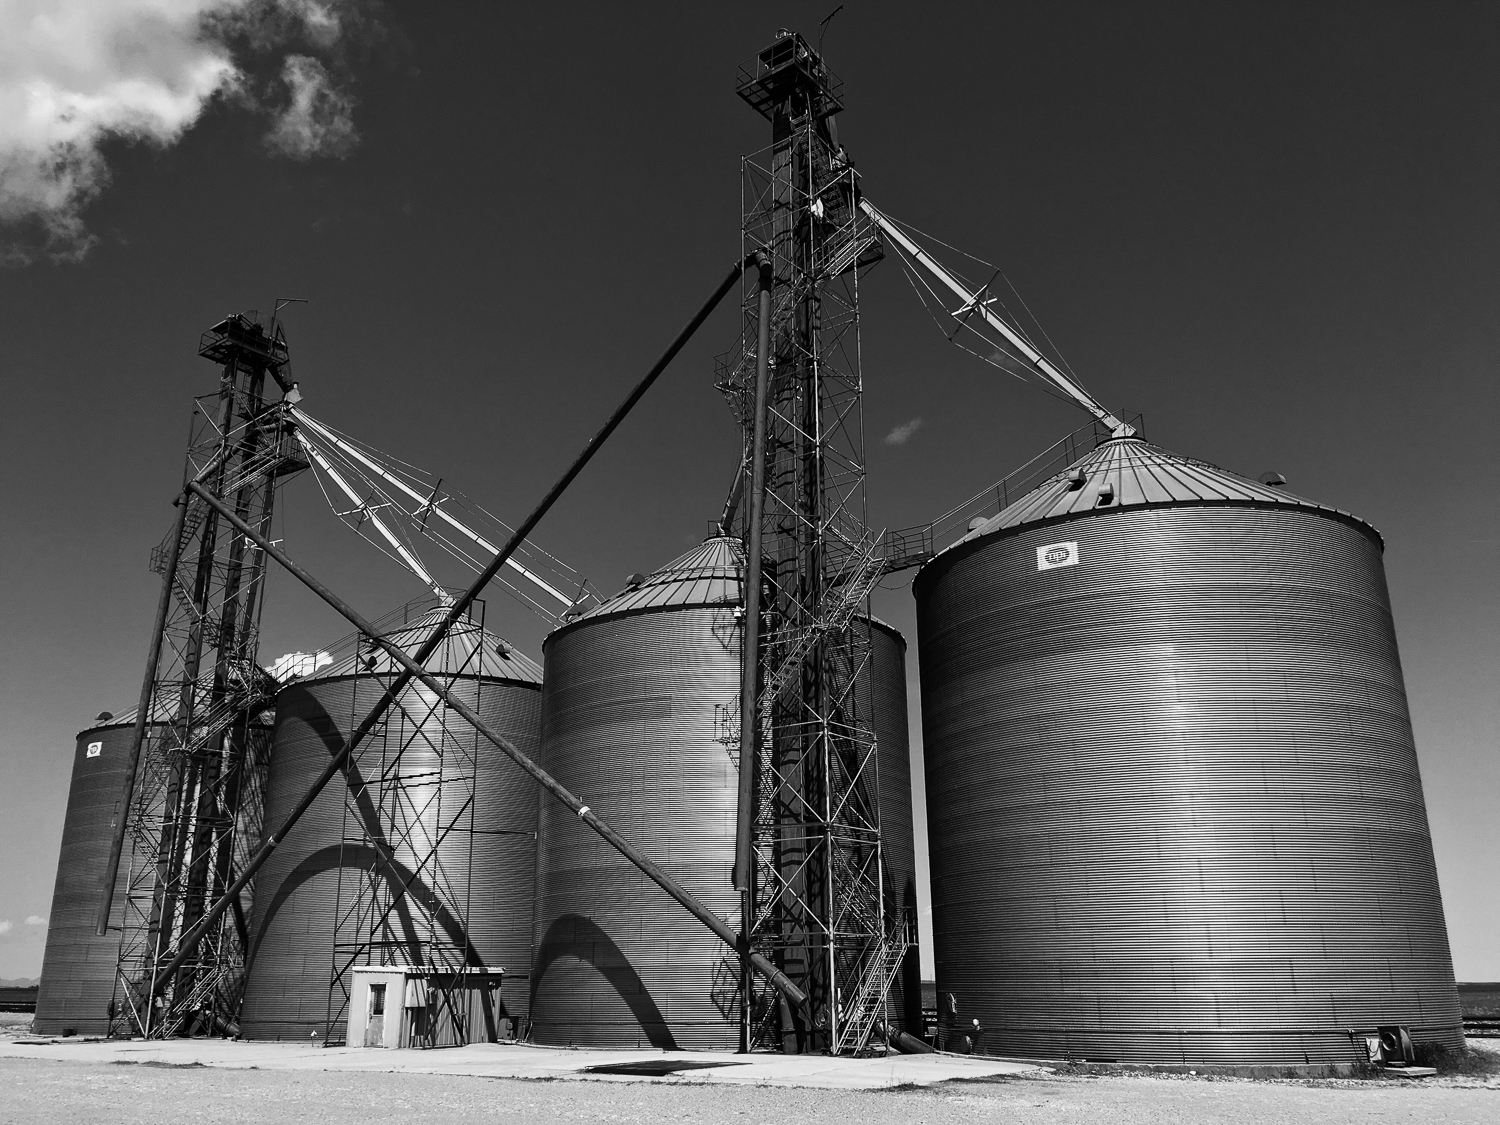 // Some Silos on the Farm Lands of Montana